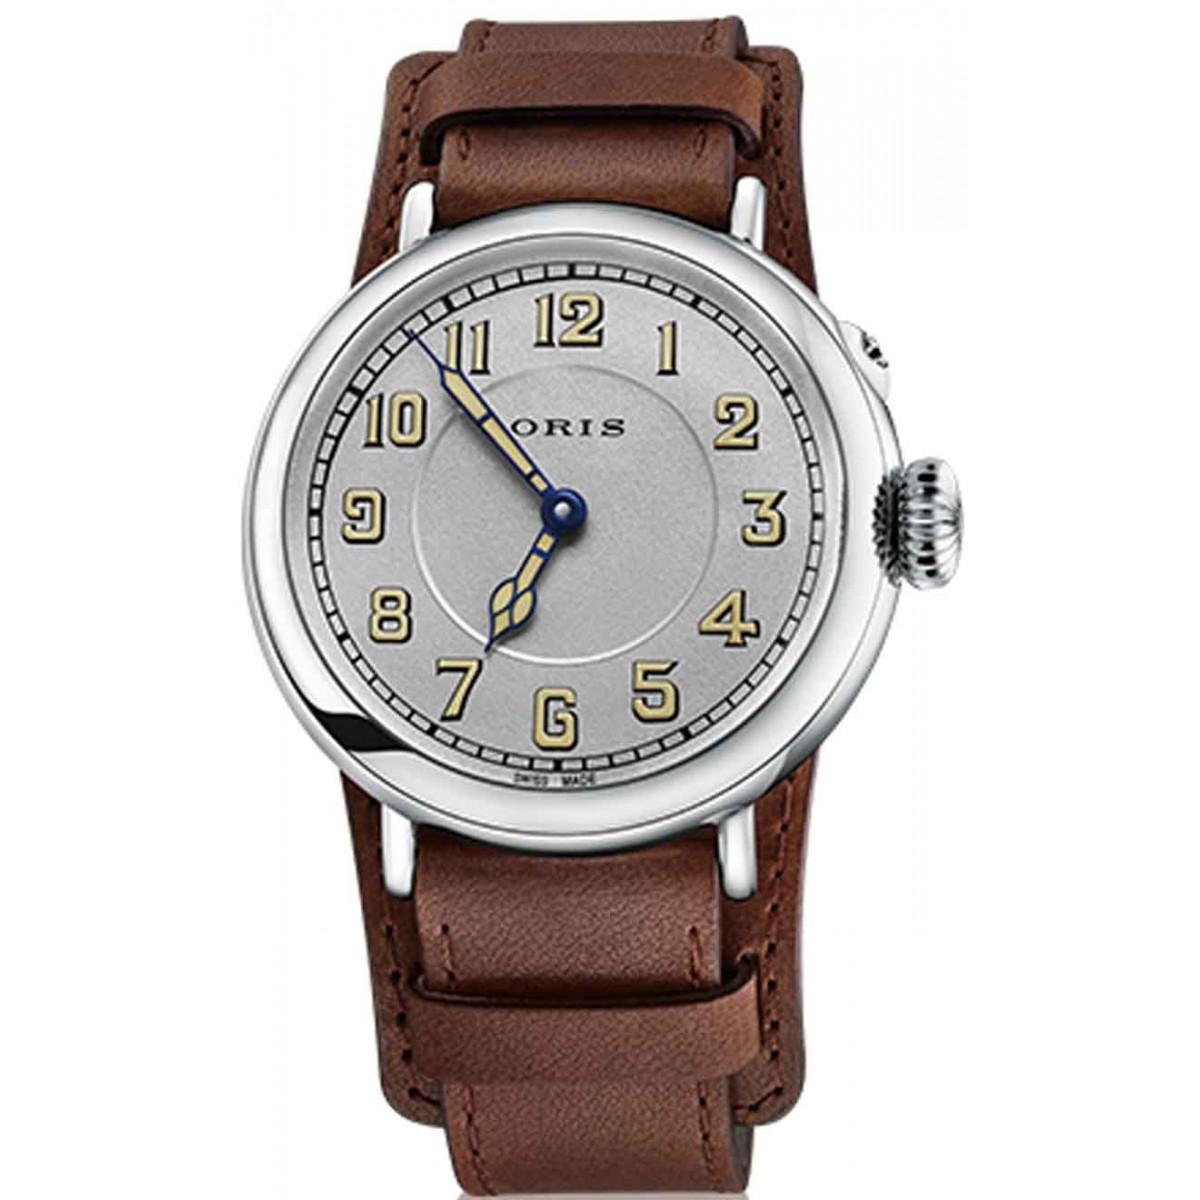 ORIS BIG CROWN 1917 LIMITED EDITION - 5 BAR ∅40 mm, Automatico, Esfera Plata, Correa Piel